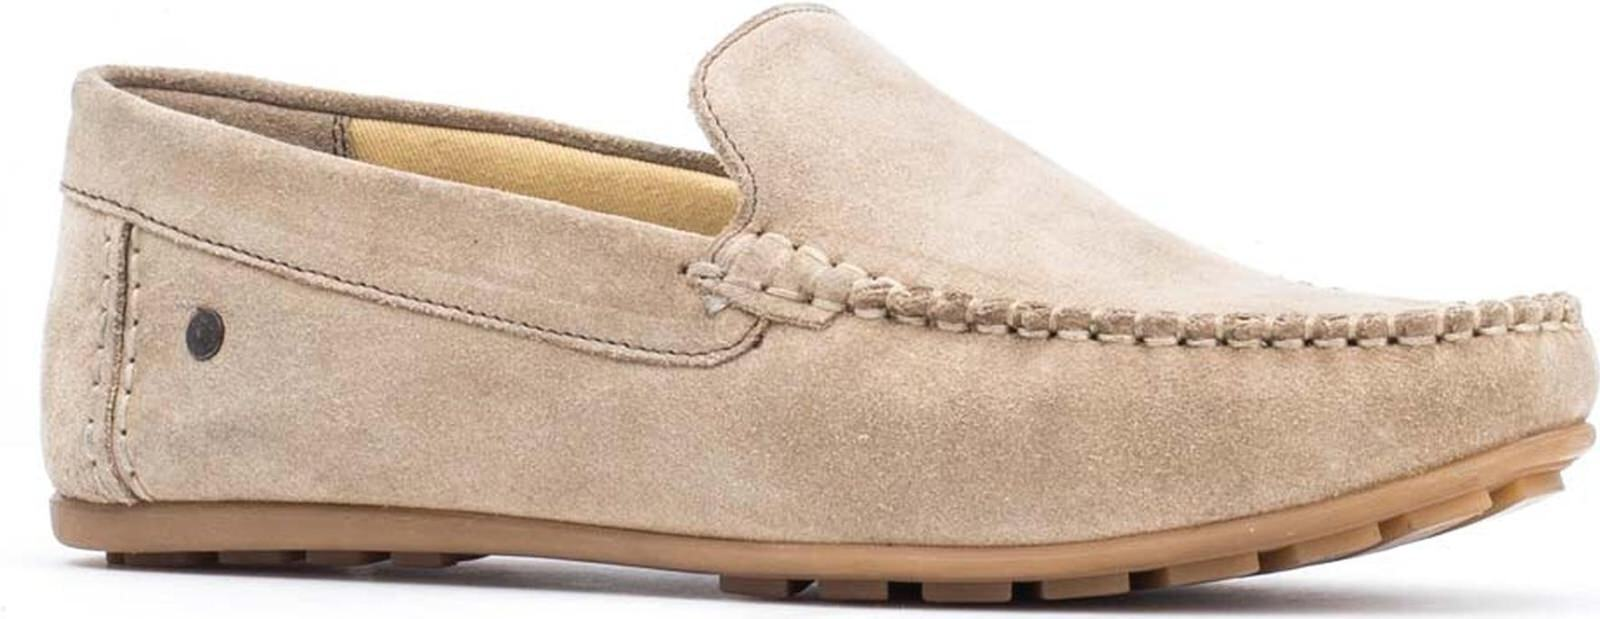 Base London HENTON Mens Leather Casual Slip On Moccasin Loafers schuhe Taupe